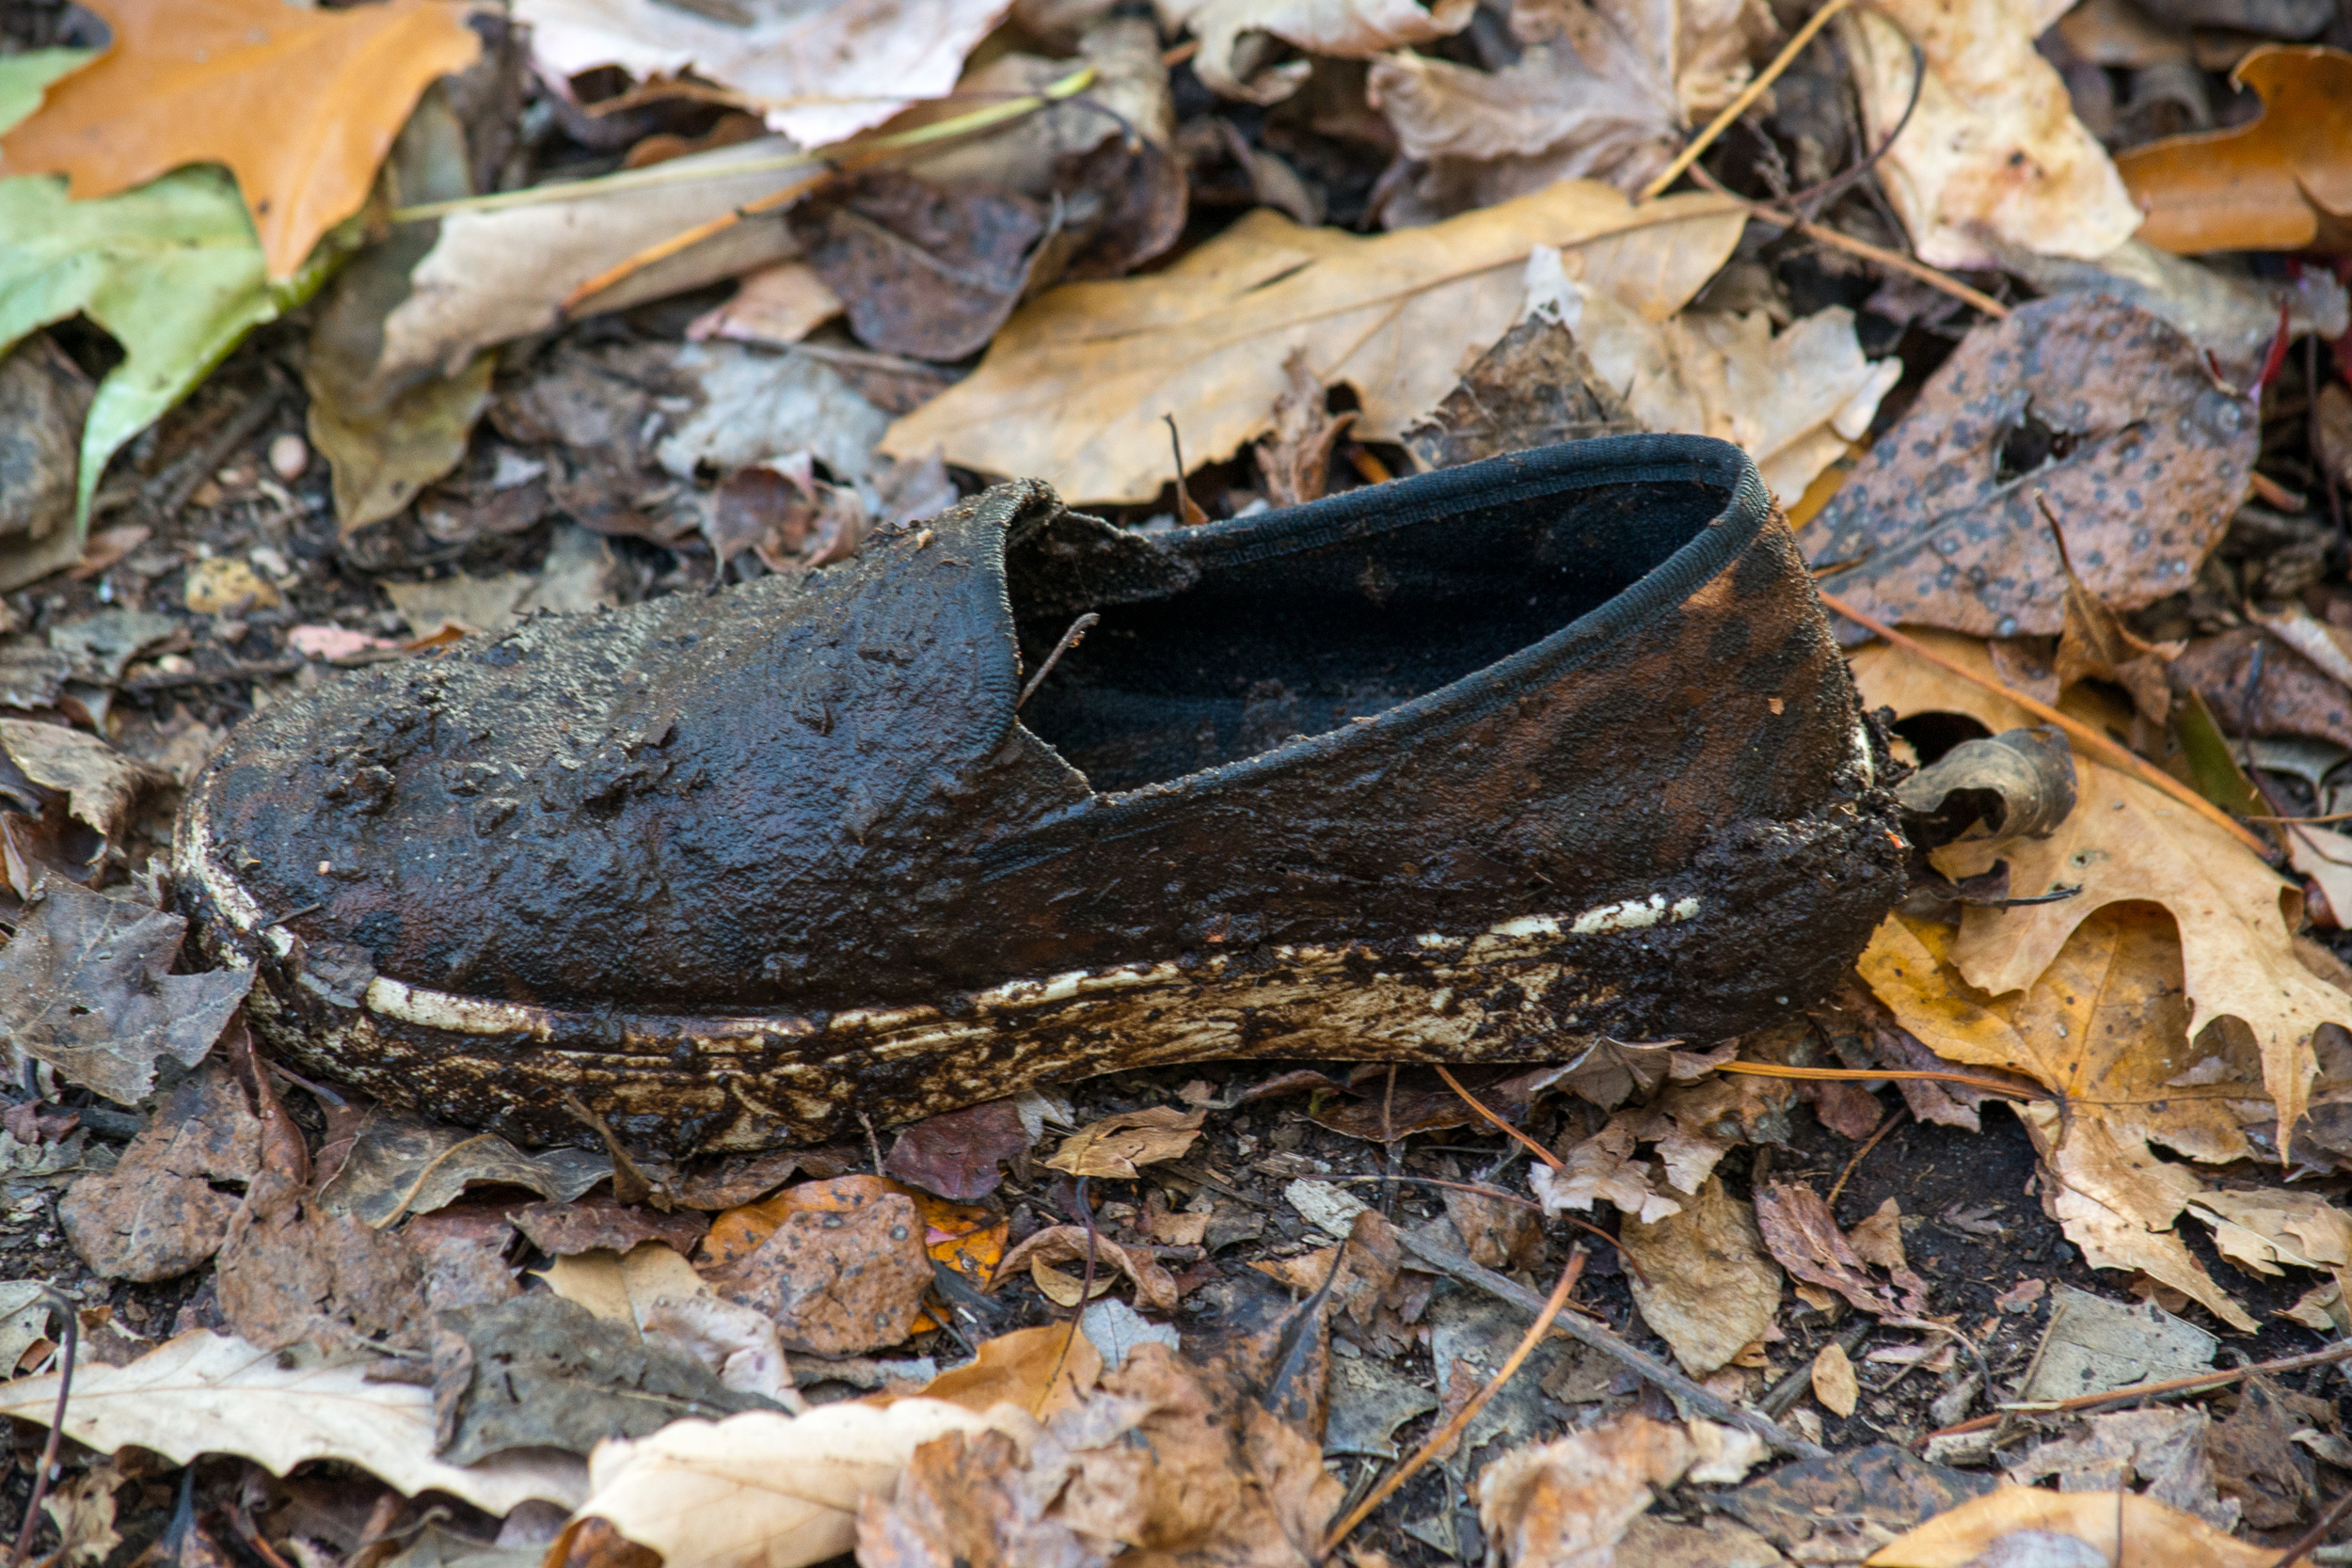 The Lost Muddy Shoe